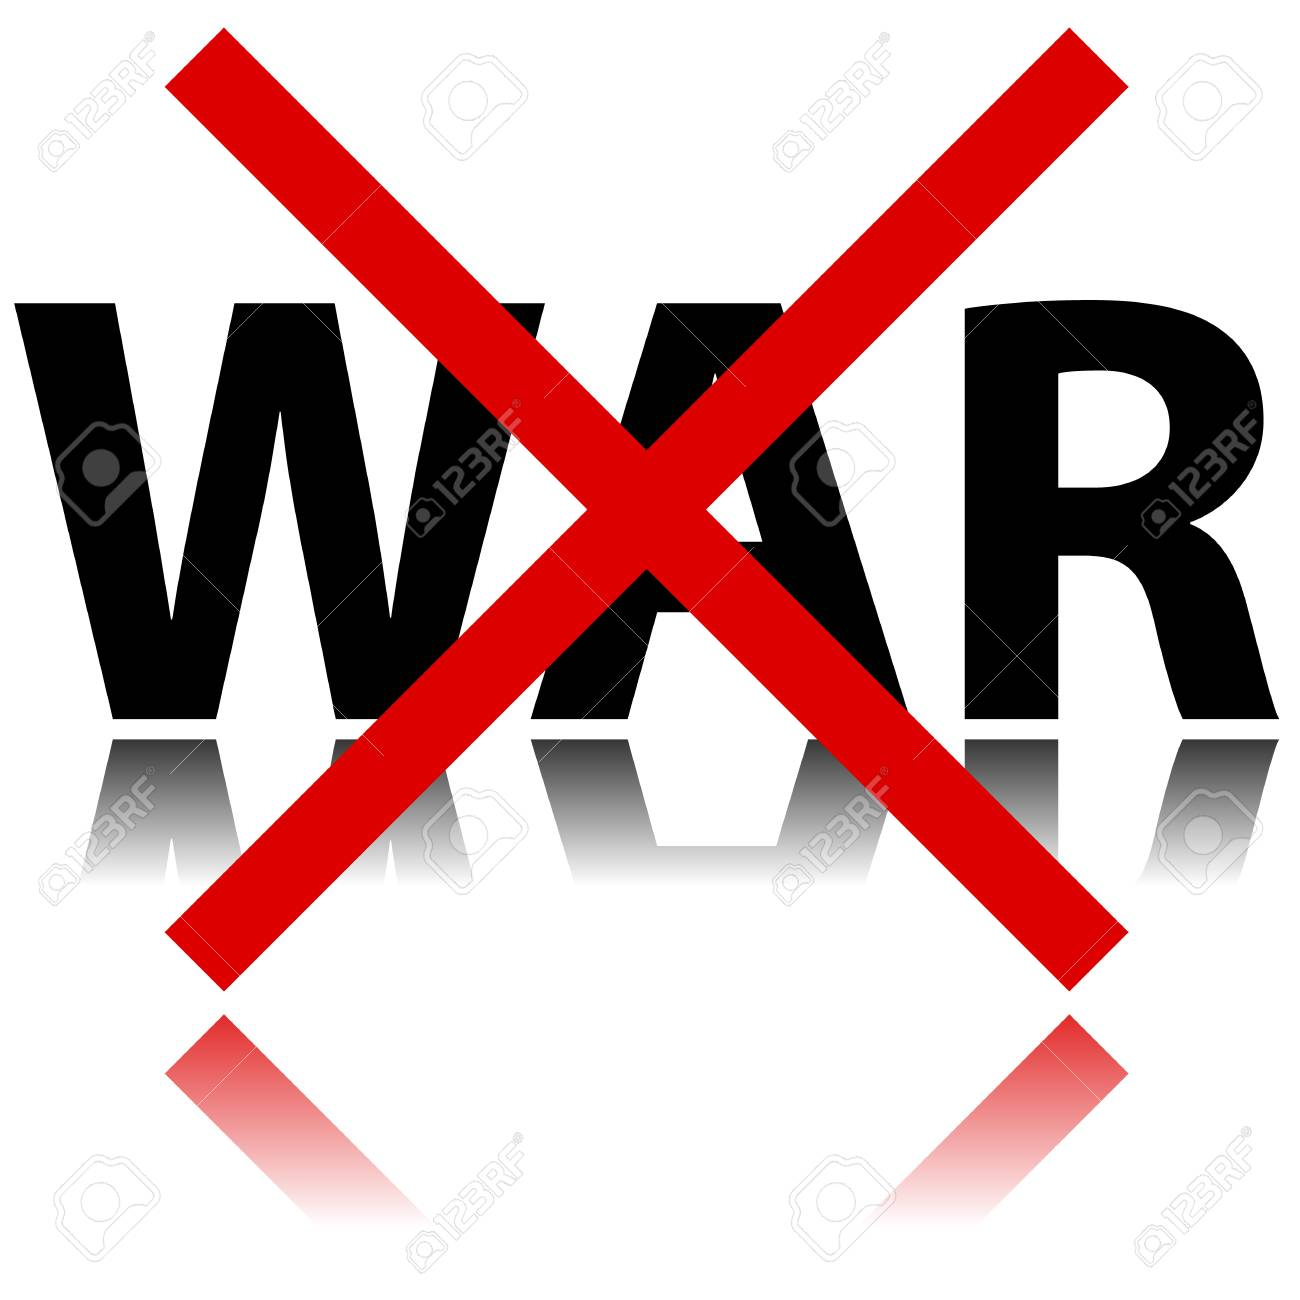 Illustration of no war sign on white background Stock Vector - 26578174